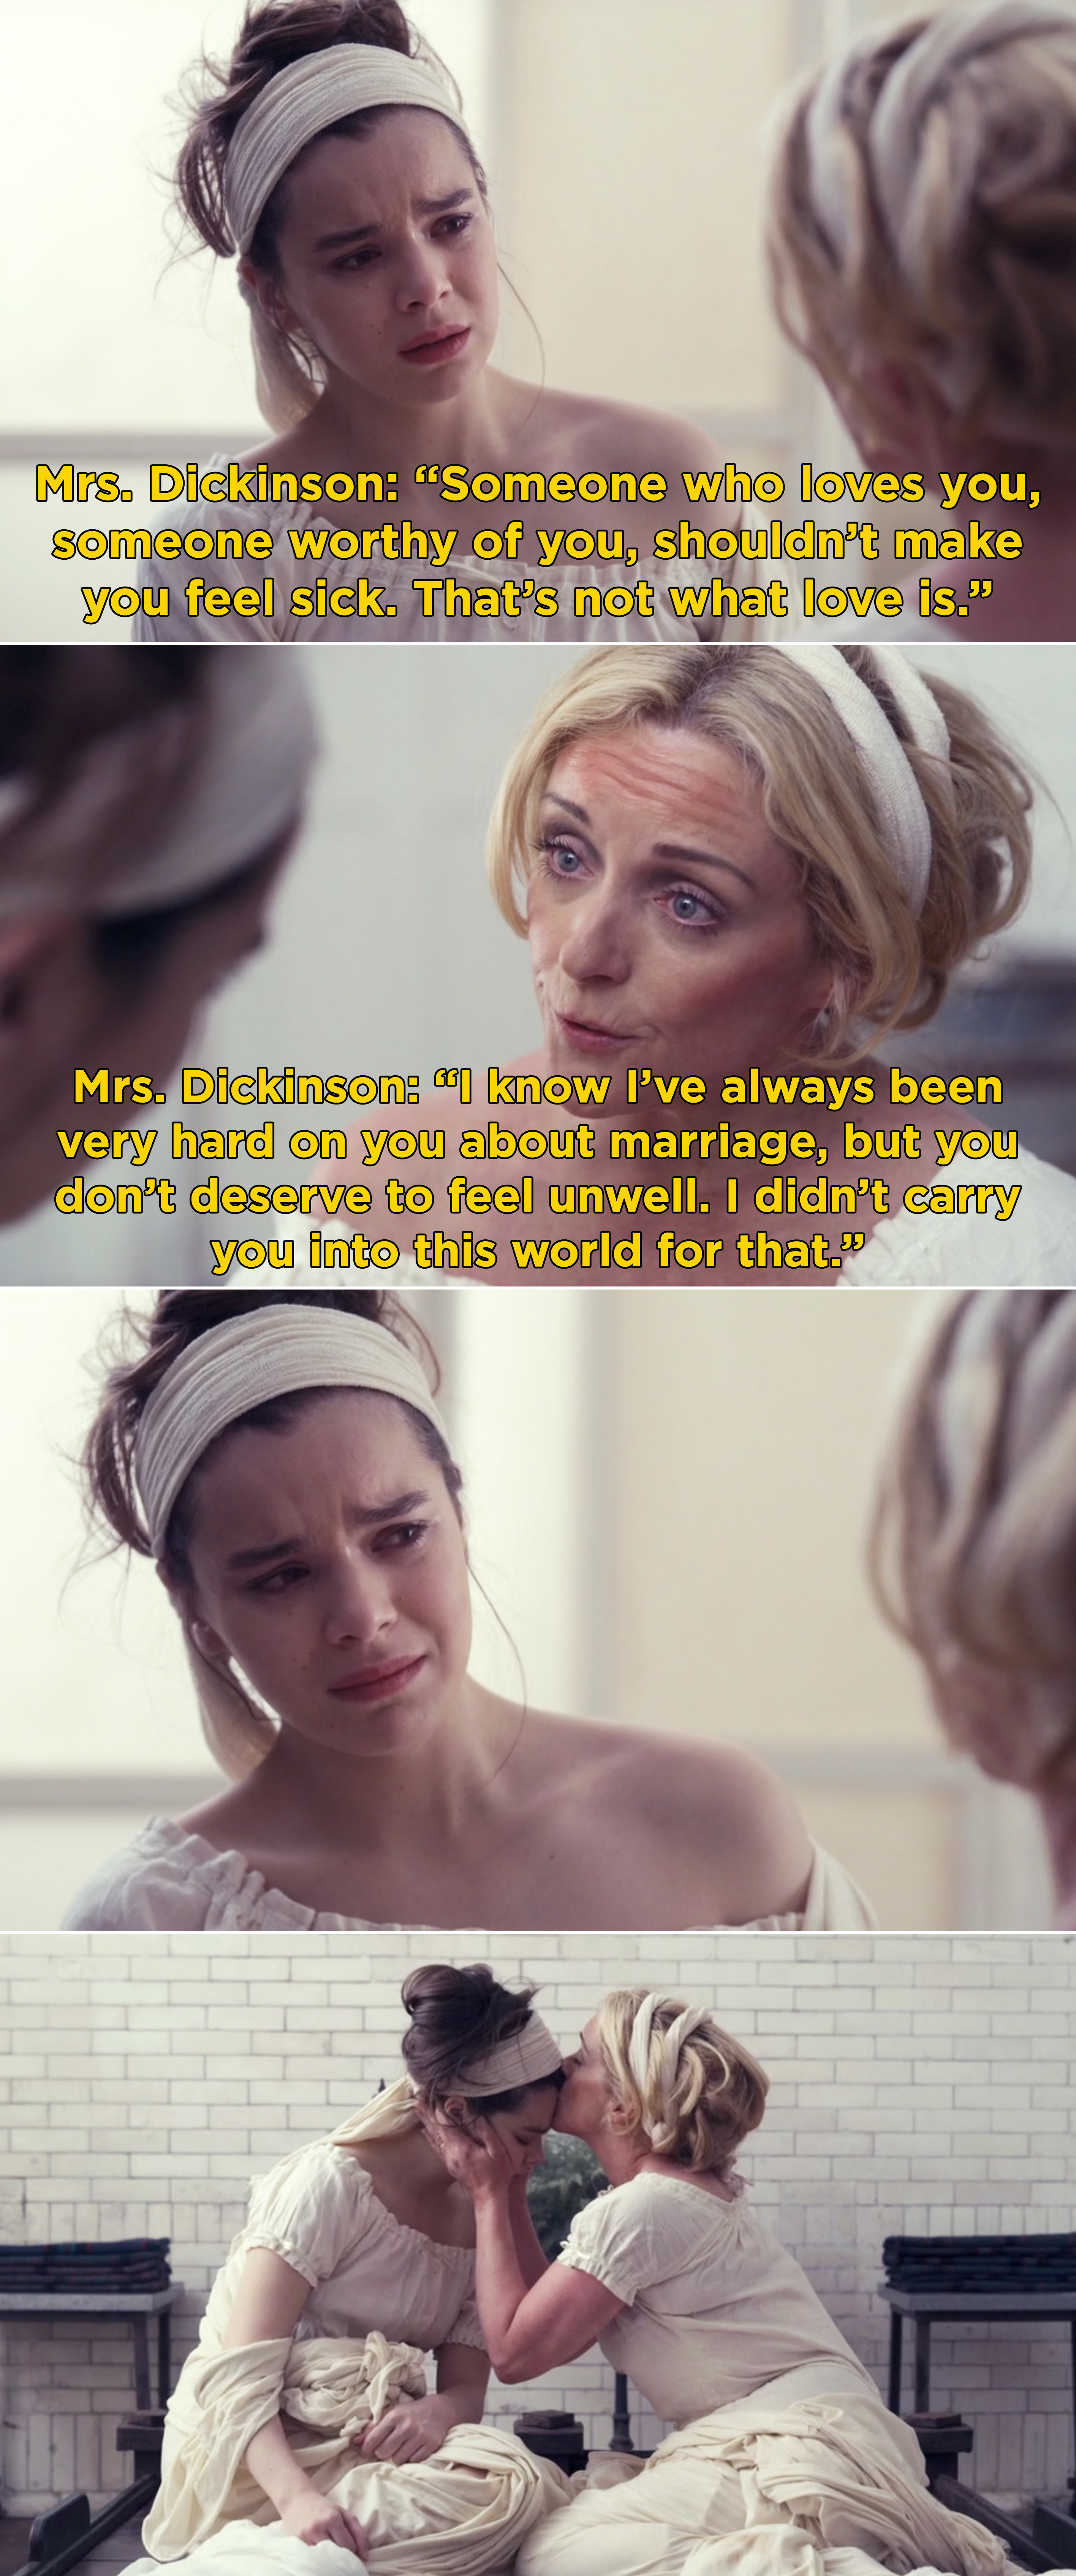 Mrs. Dickinson telling Emily that someone who loves you shouldn't make you feel sick and she is too special to feel this way